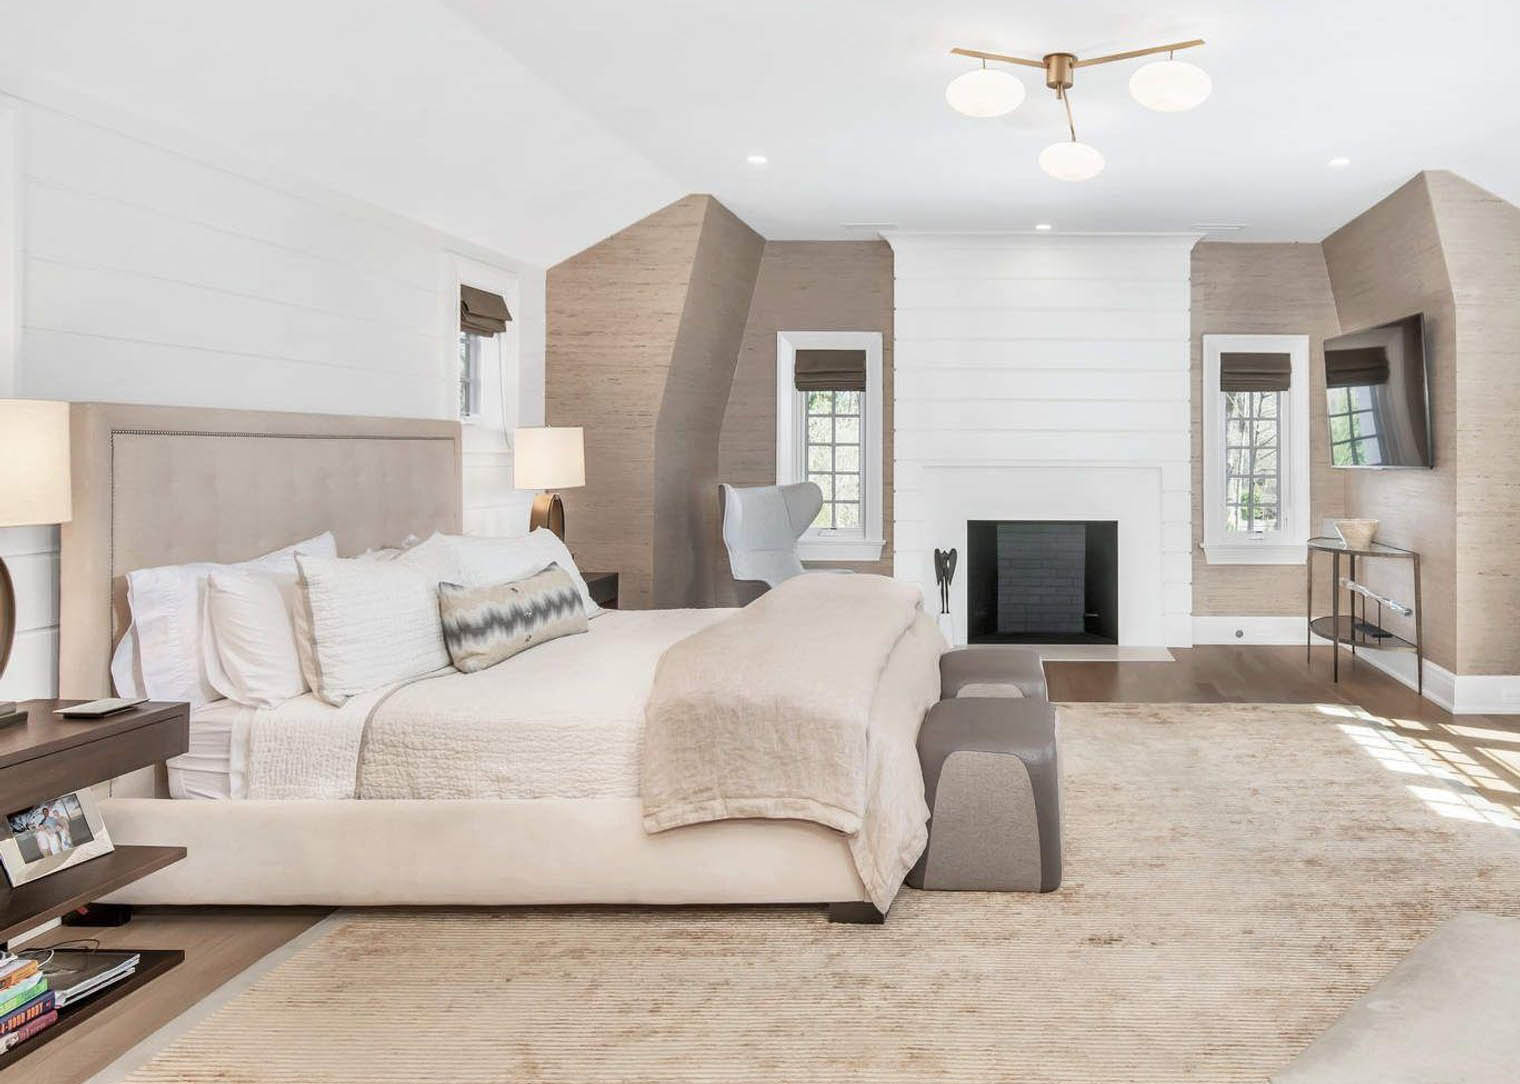 Master bedroom with horizontal shiplap wall paneling and wood burning fireplace.